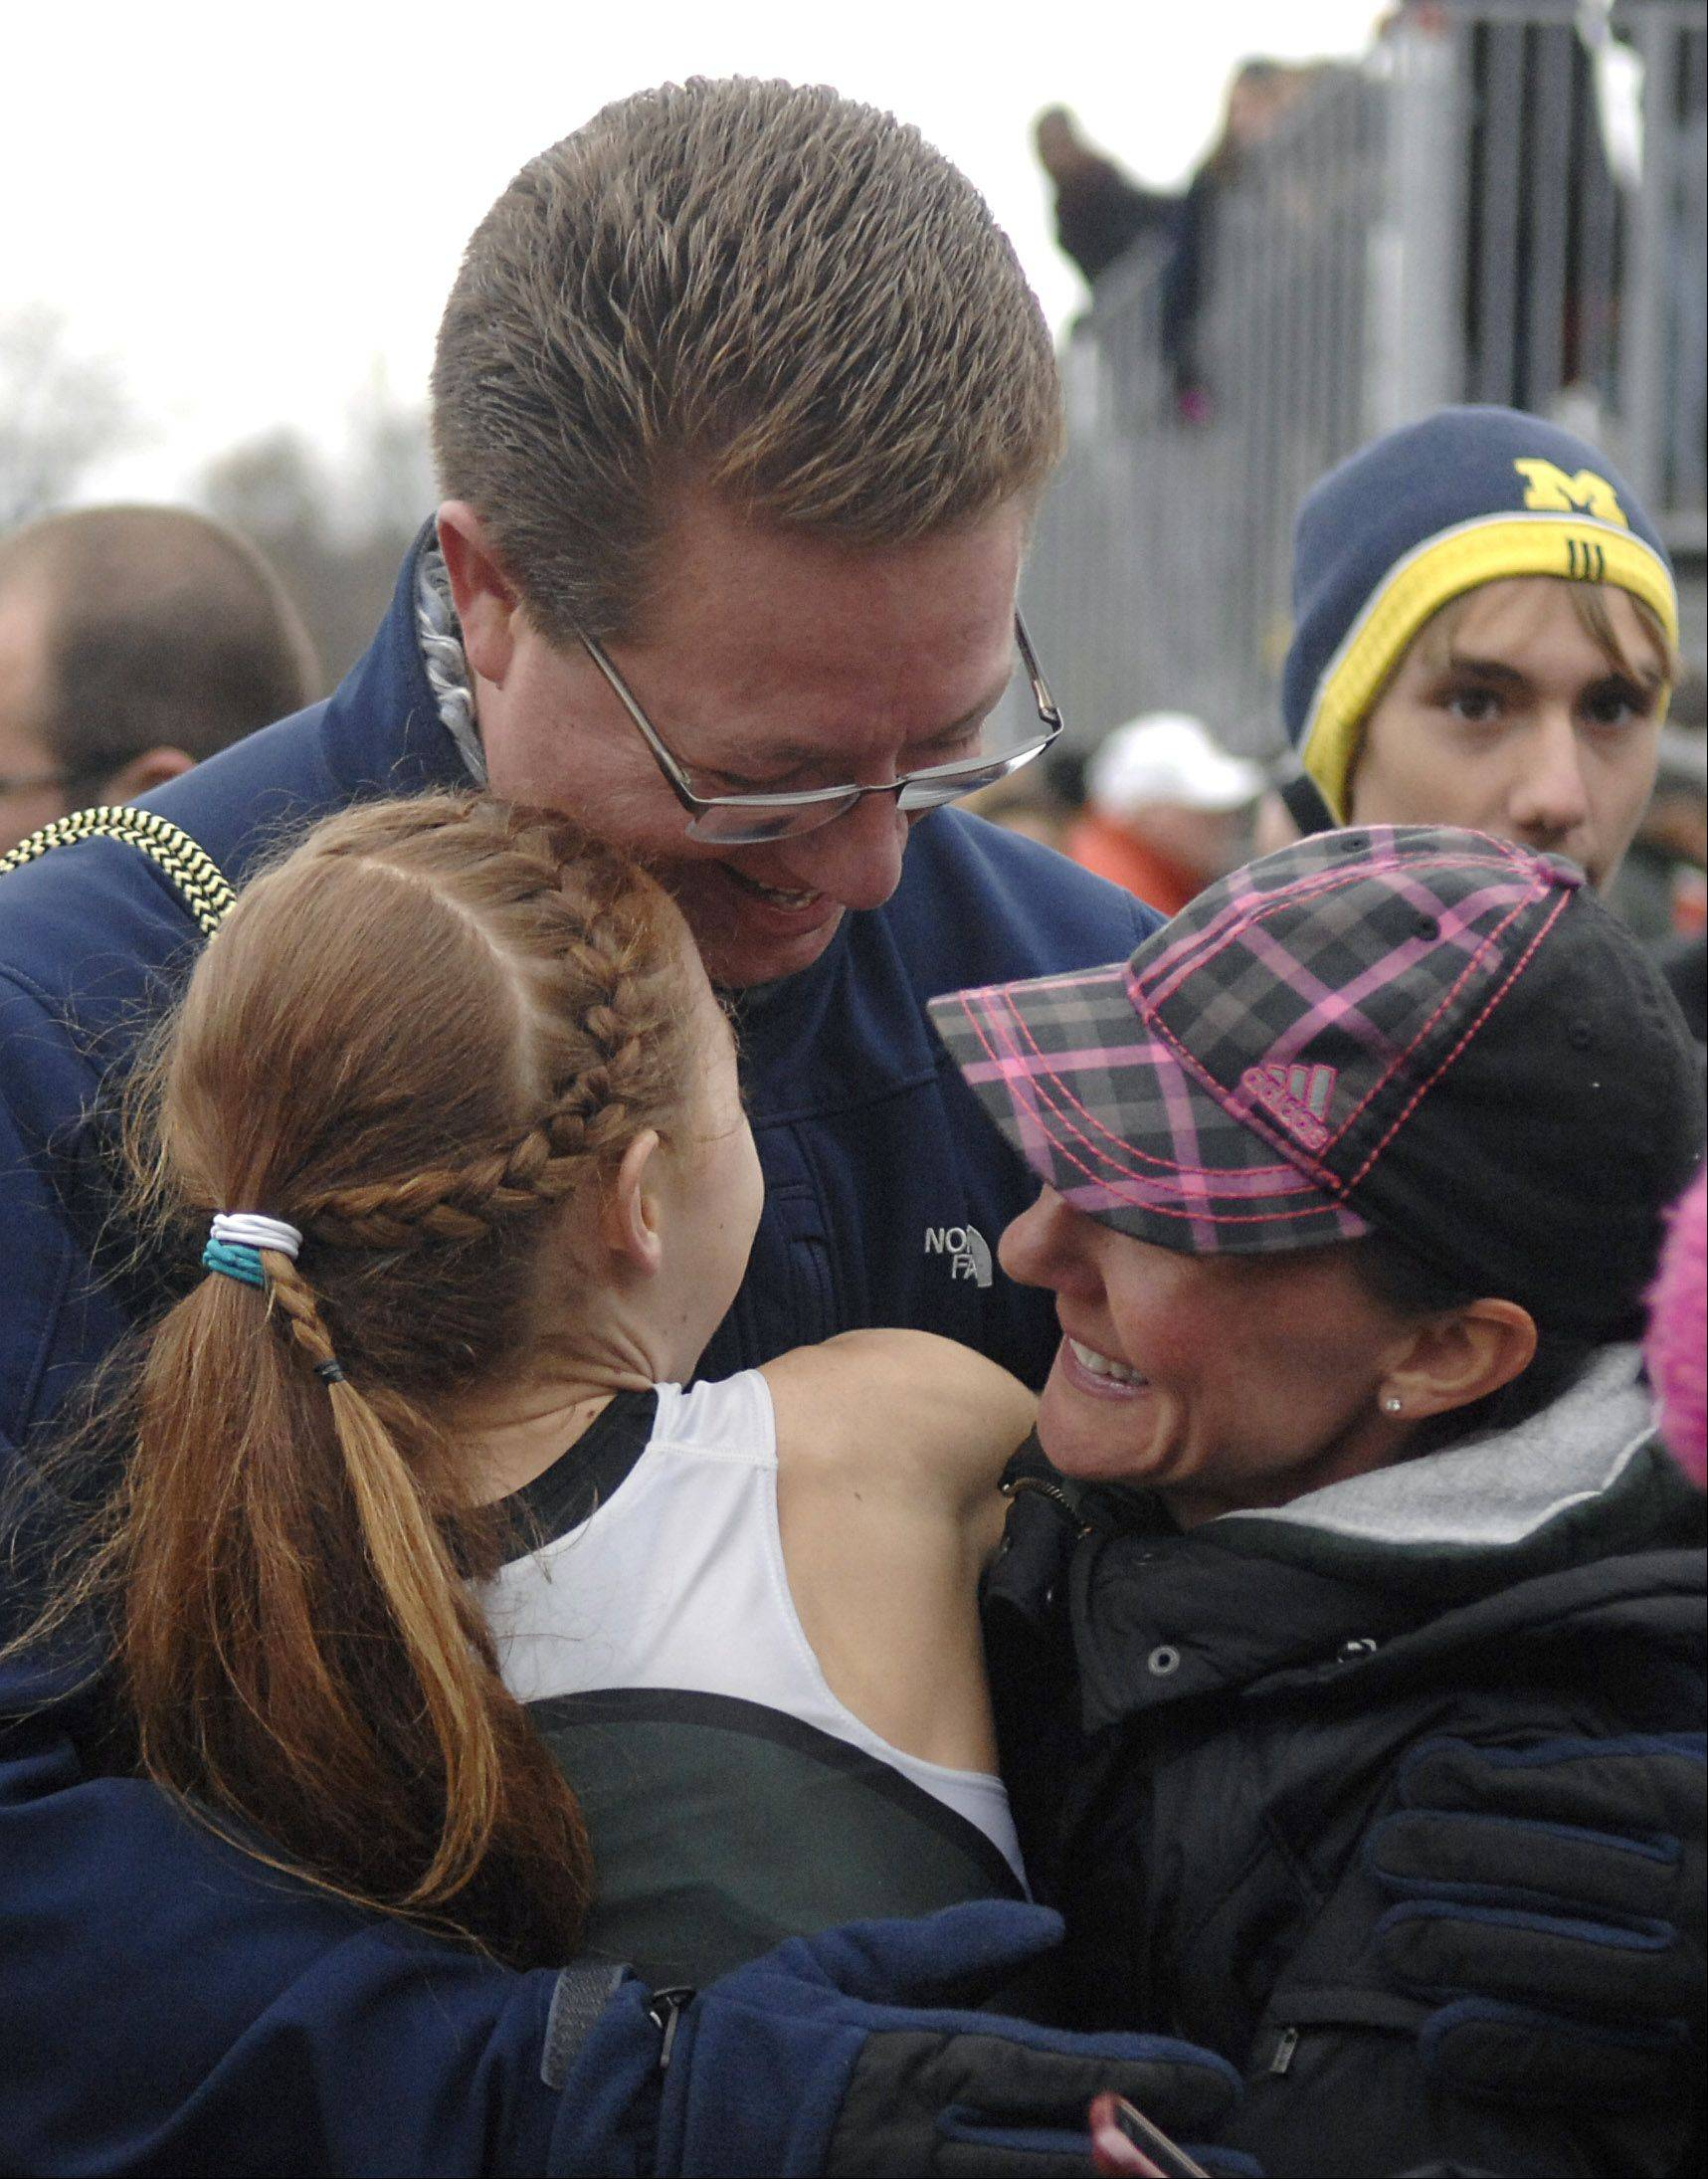 Madeline Perez is embraced by her parents, Ed and Joelle, after she took first place in the state 3A cross country final in Peoria on Saturday, November 3.